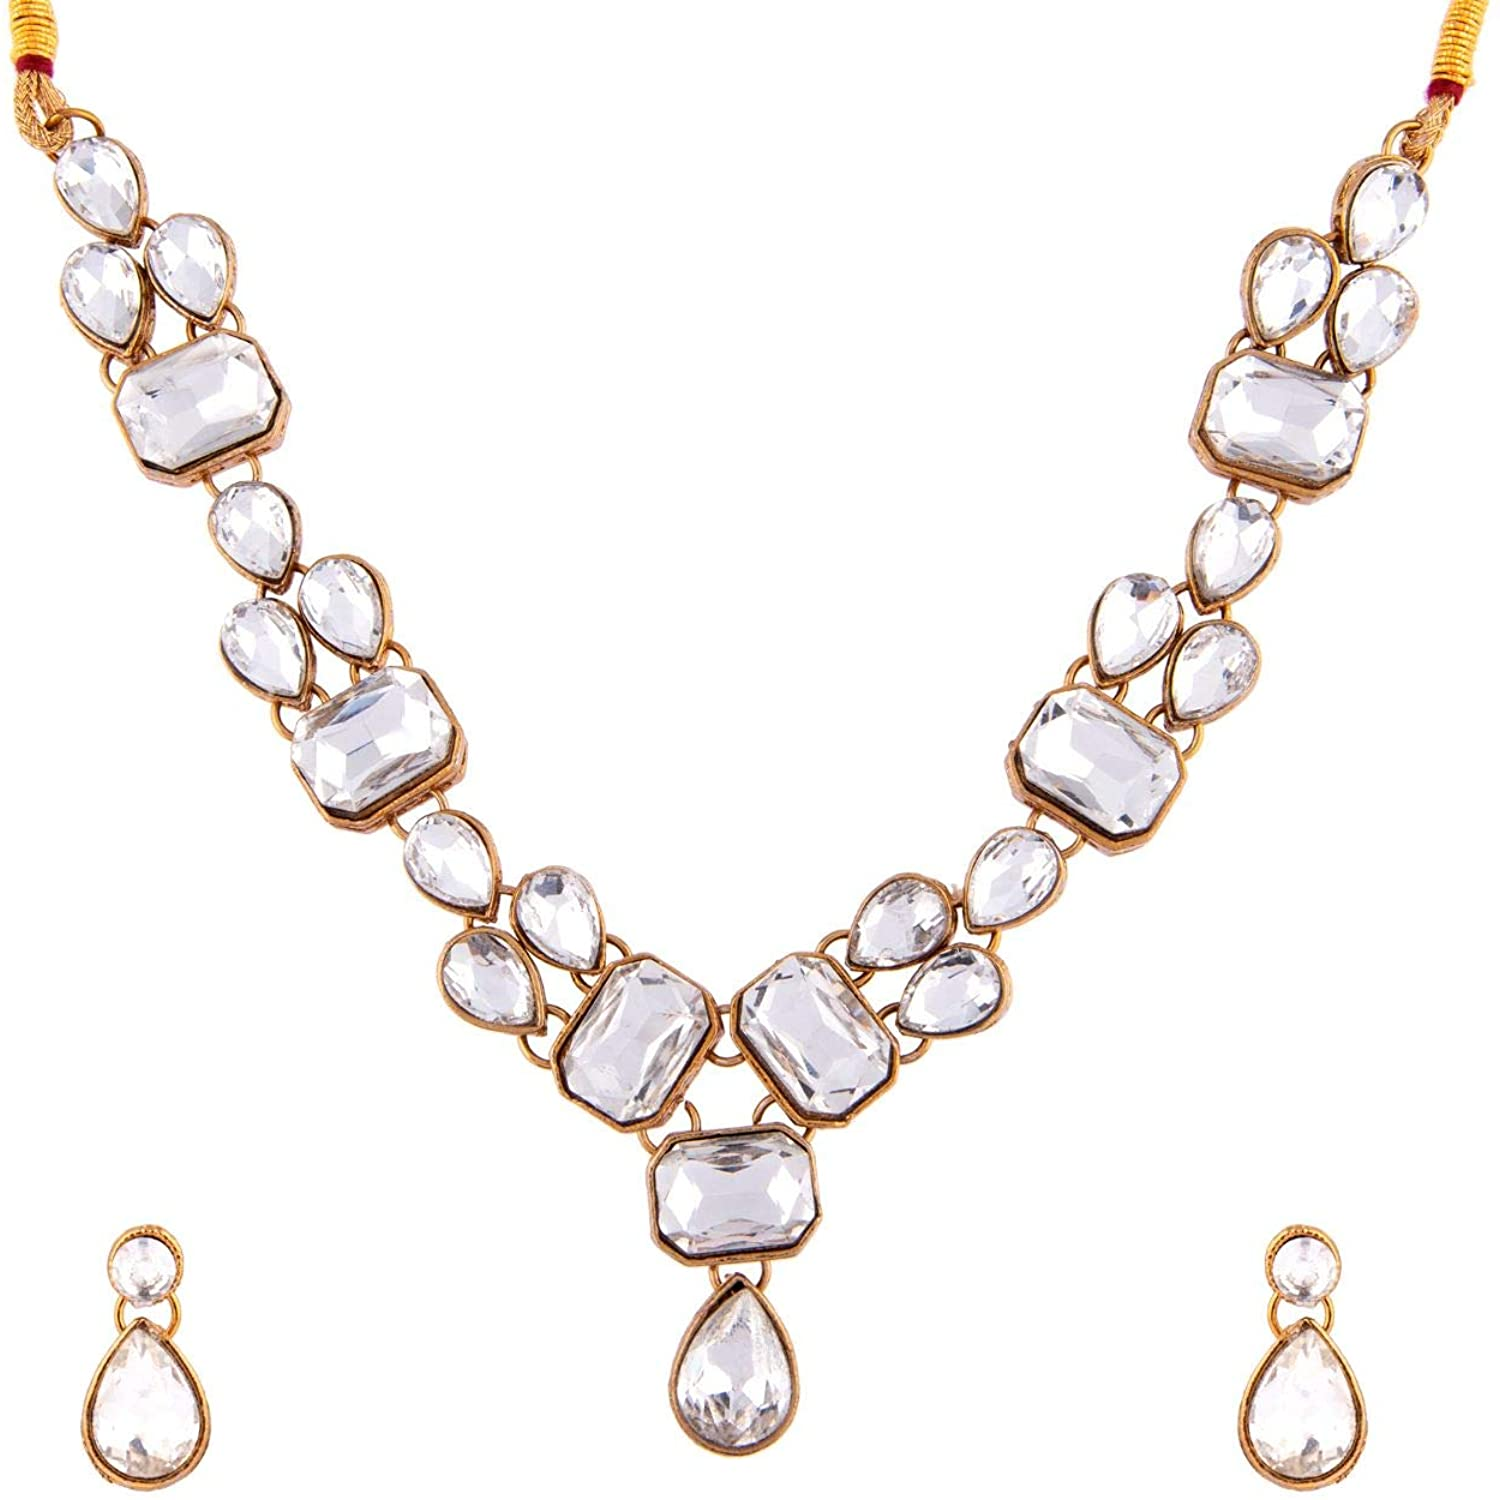 Efulgenz Fashion Chunky Crystal Faux Pearl Vintage Antique Gold Plated Statement Collar Choker Necklace Earrings Jewelry Set